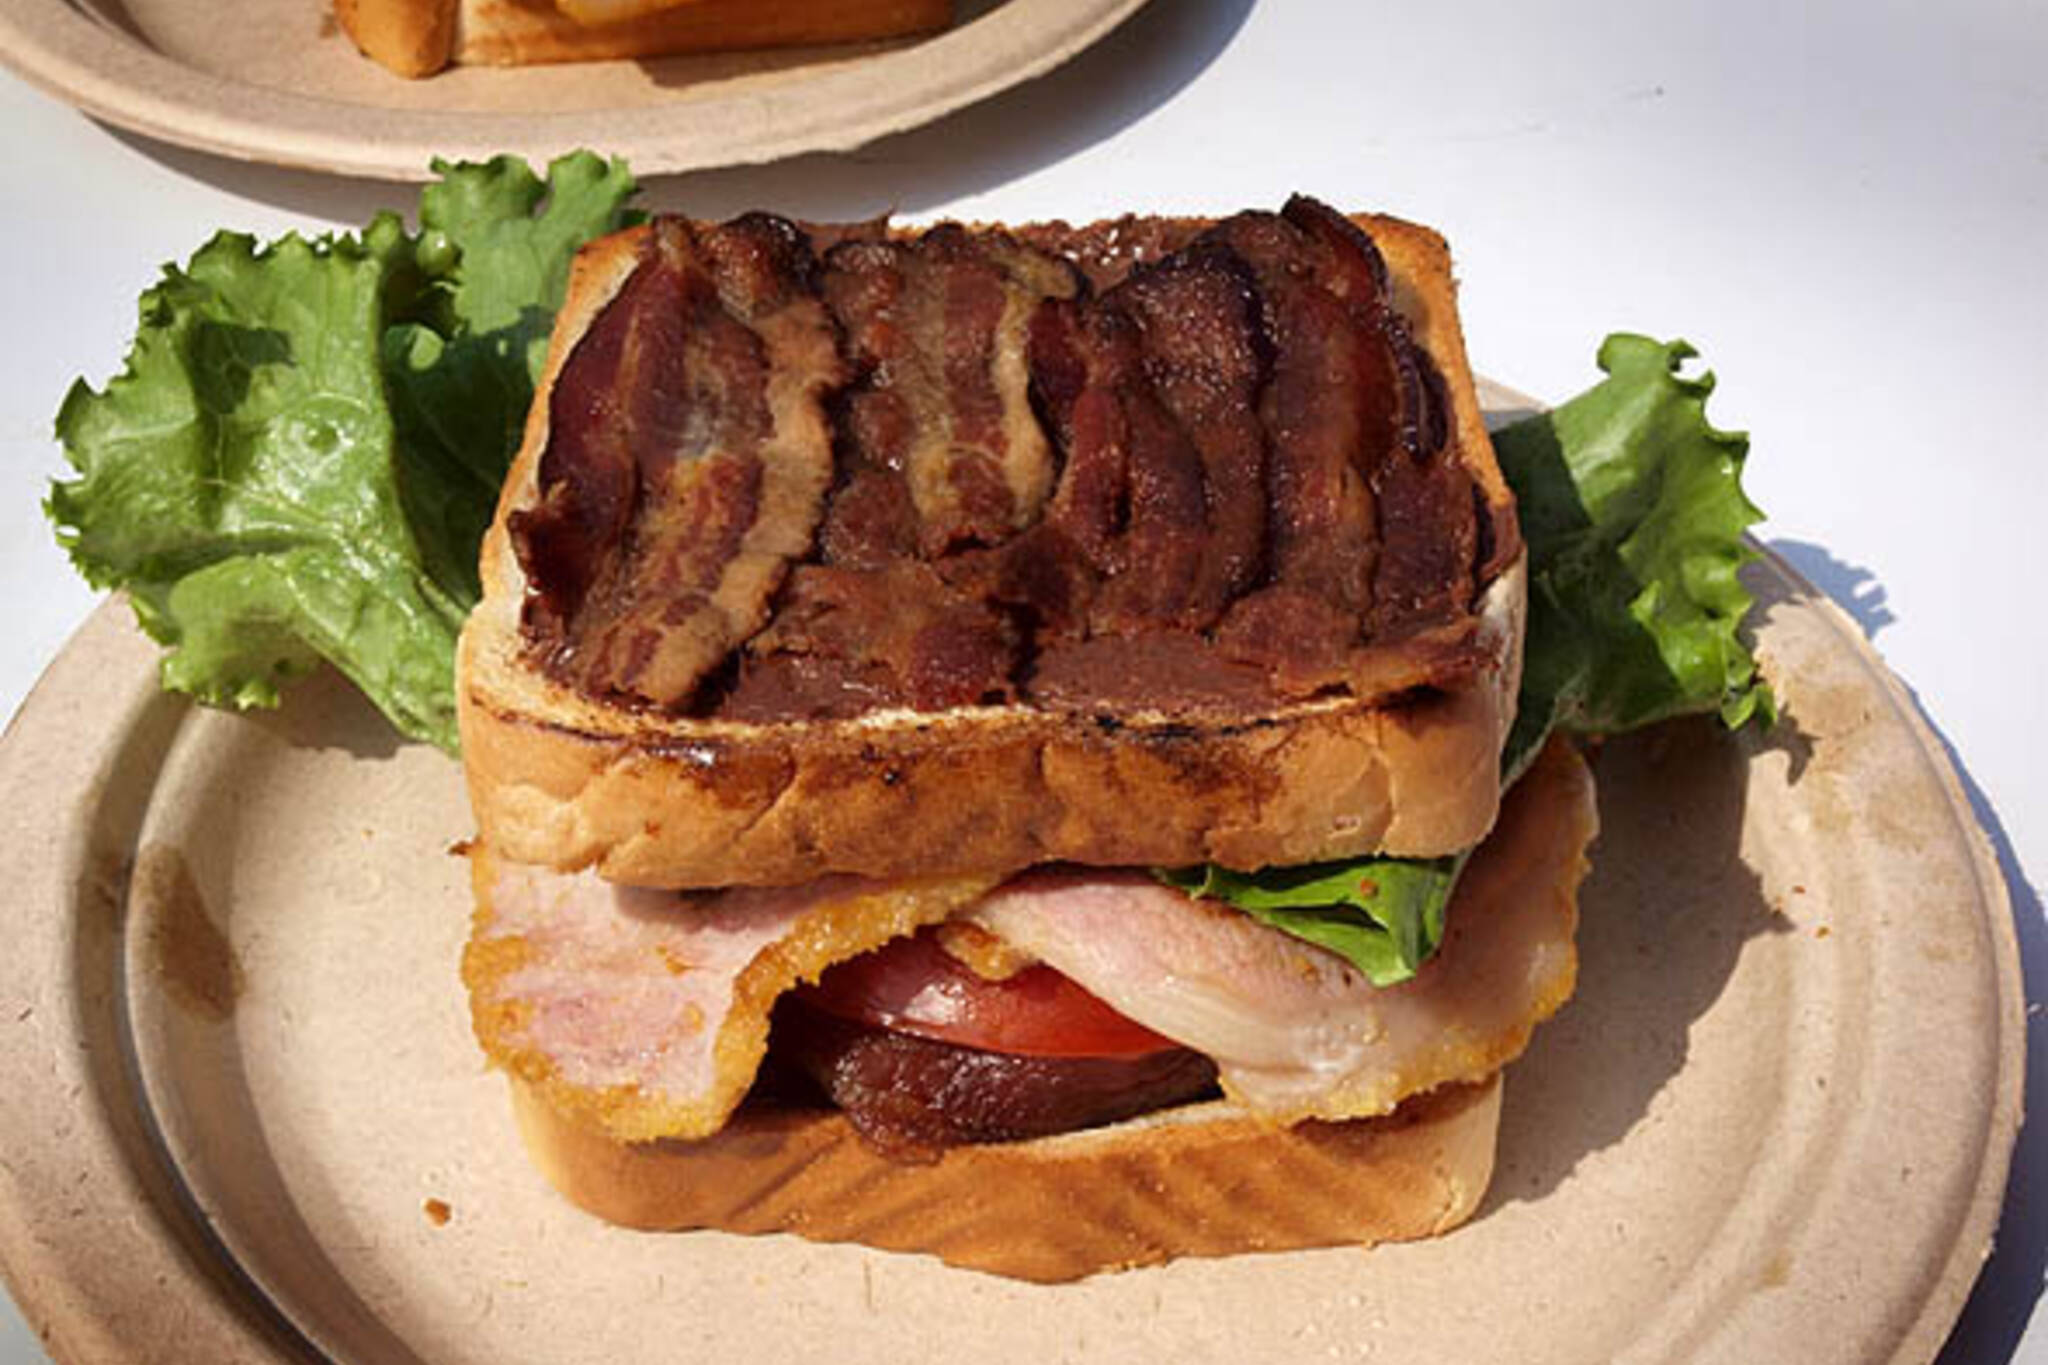 Bacon Nation's BBBLT